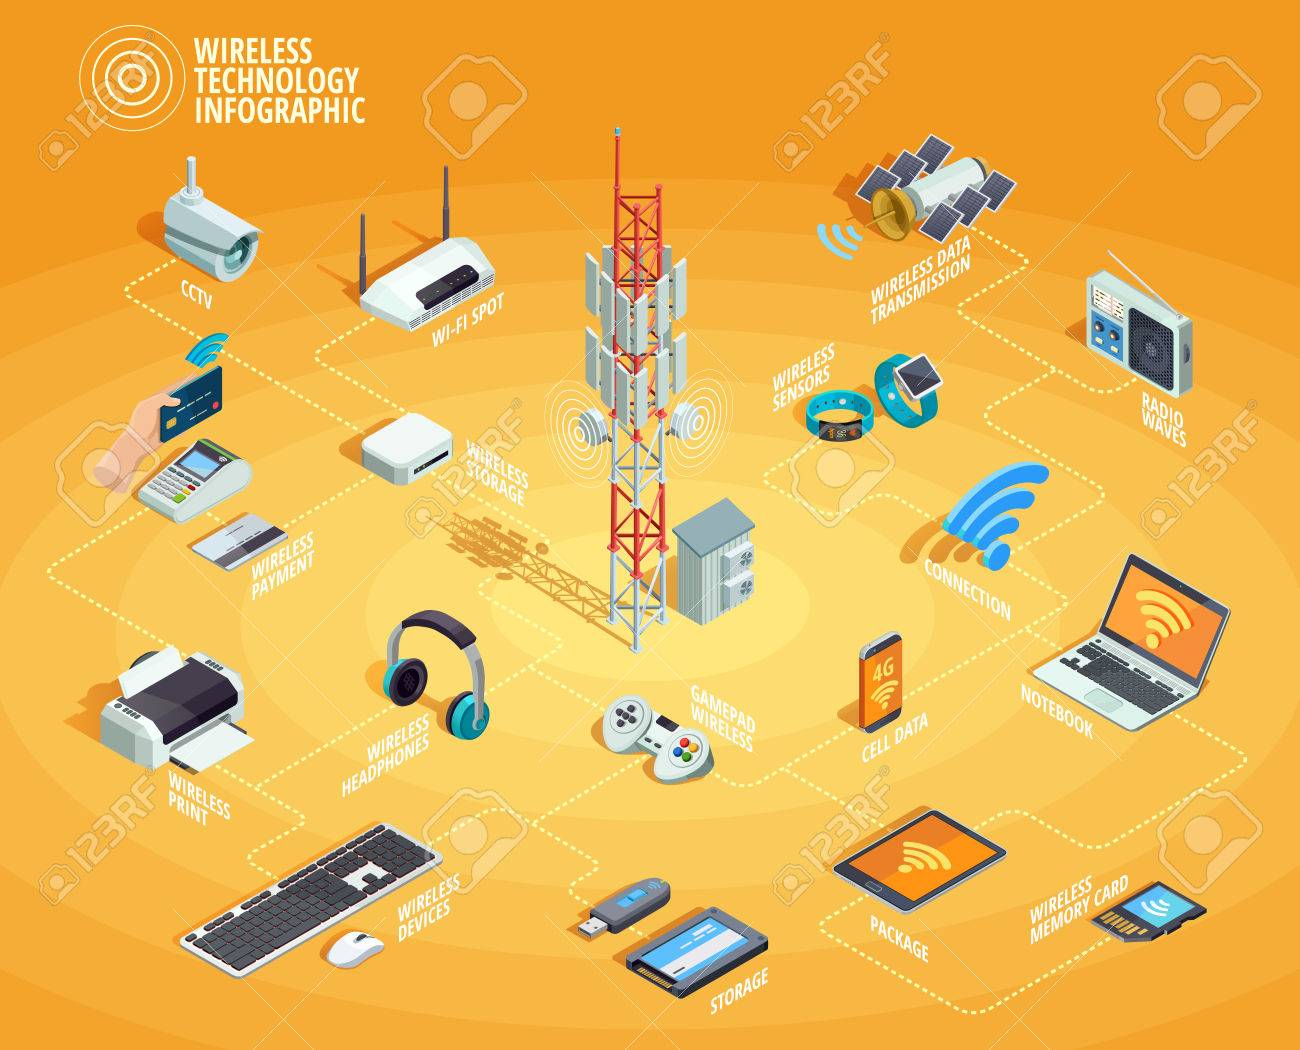 Wireless technology electronic devices internet access and wireless technology electronic devices internet access and connection infographic isometric flowchart poster with smartphone printer router nvjuhfo Choice Image